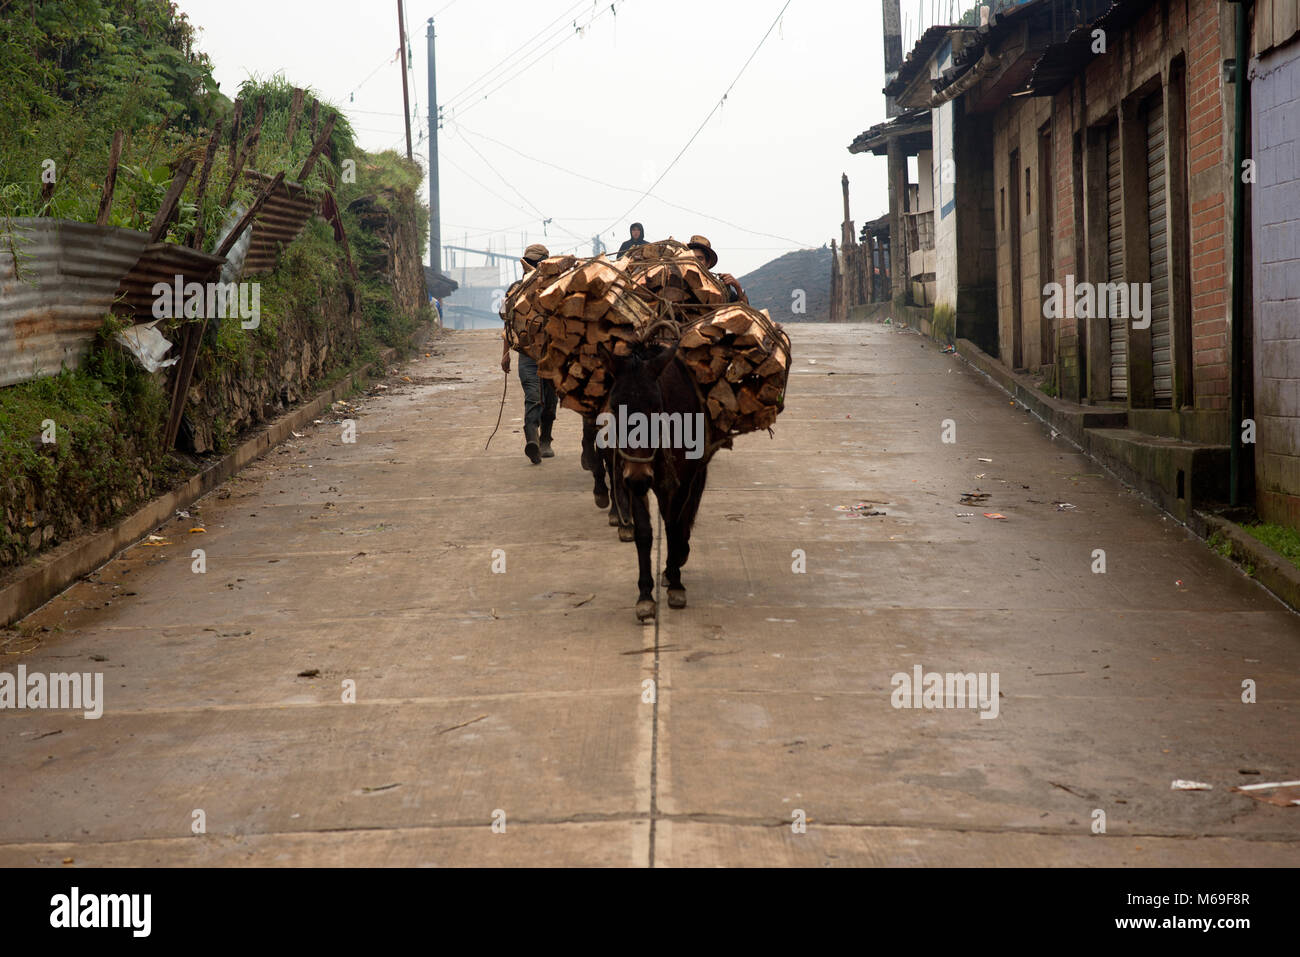 A donkey carrying firewood through the street. San Gaspar Chajul, Ixil Triangle, El Quiché department, Guatemala. - Stock Image